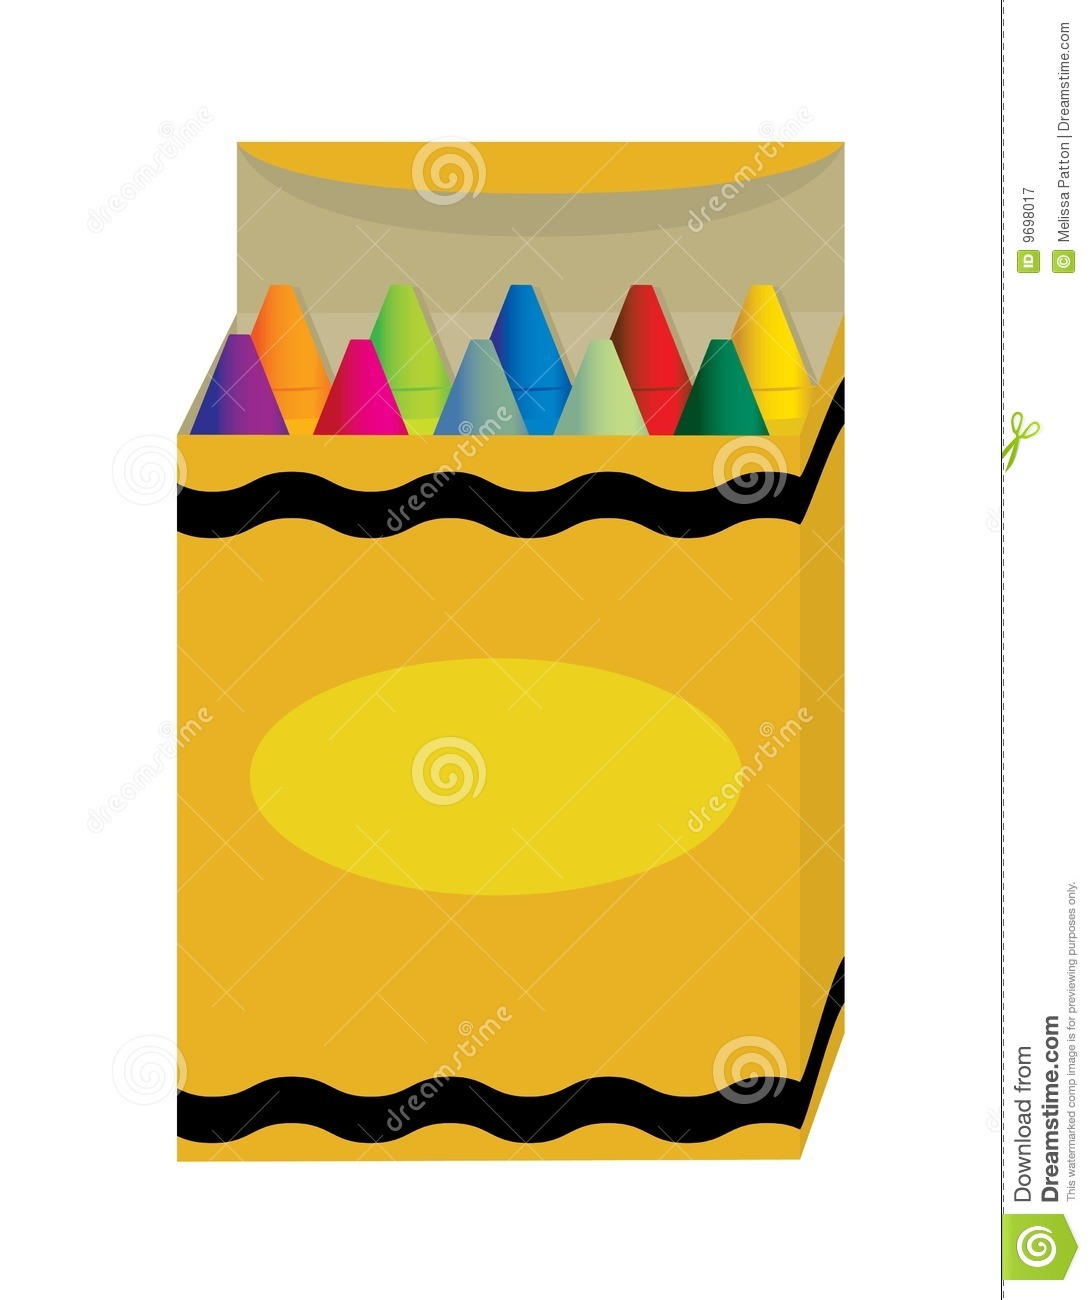 Box of crayons clipart » Clipart Station.